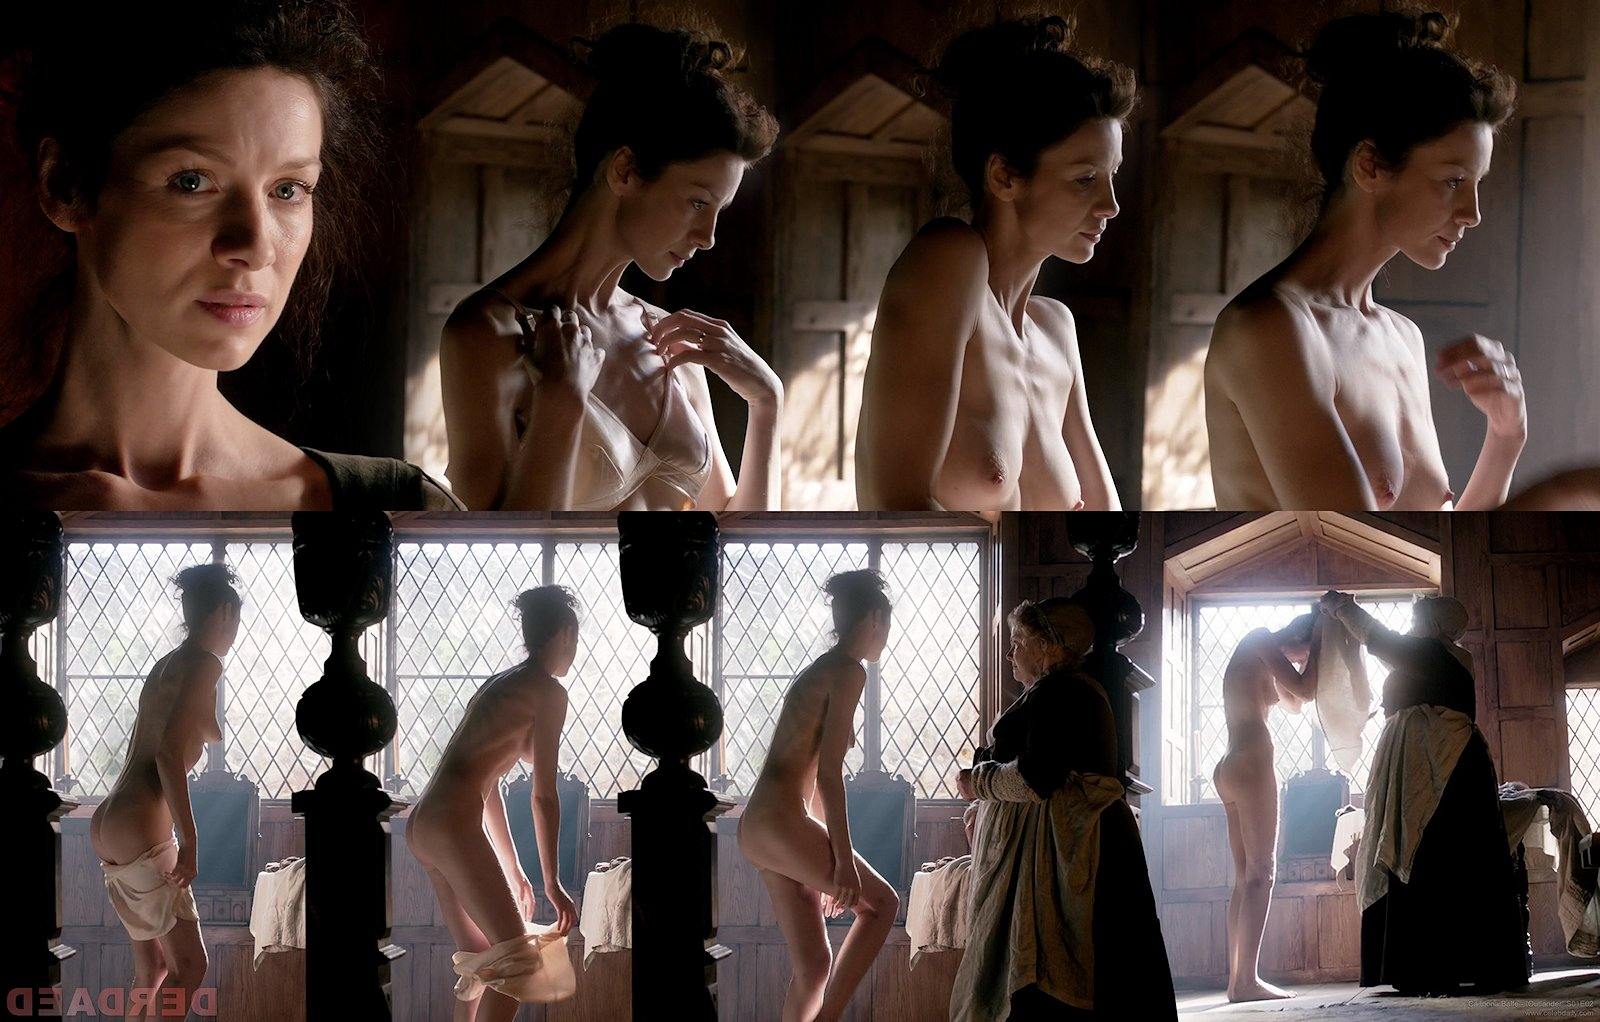 Caitriona Balfe SEX Nude and Famous! caitriona Balfe topless - boobs! photo!